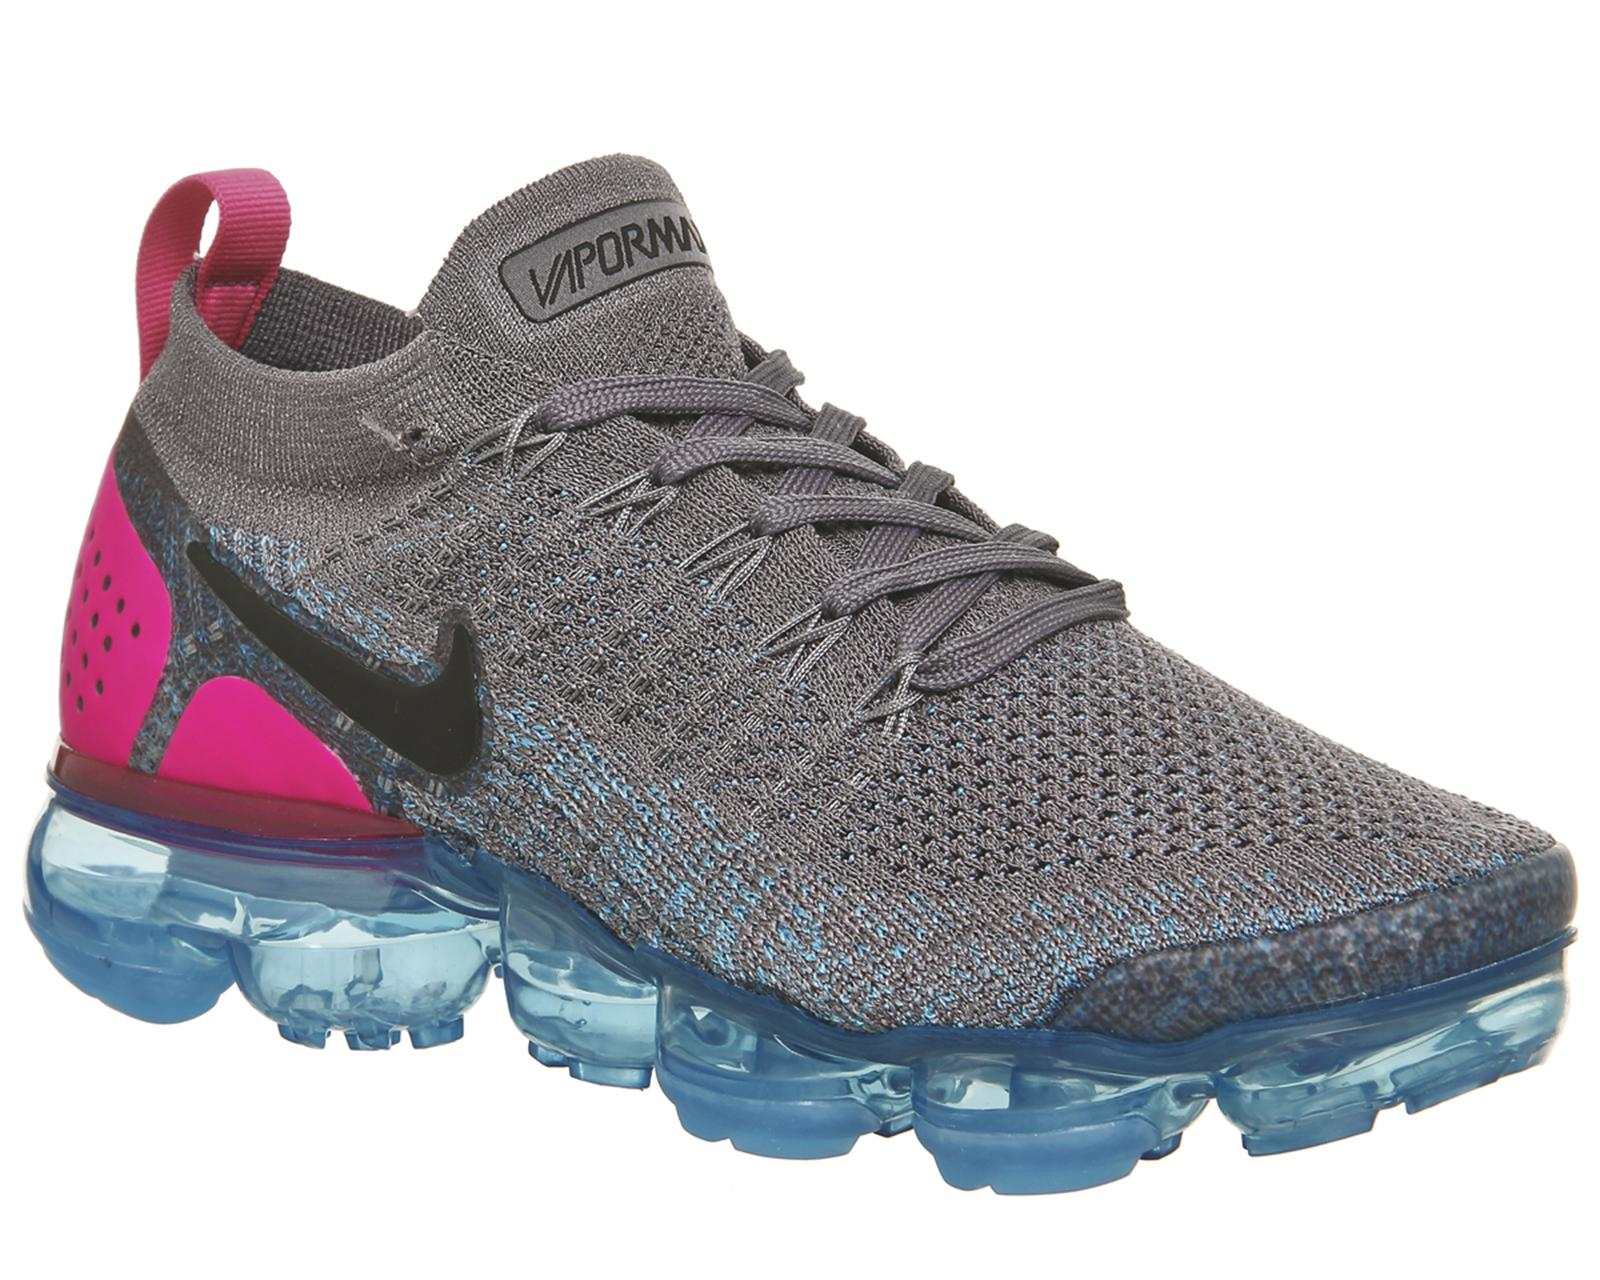 88164696842a Nike - Multicolor Air Vapormax Flyknit 2 for Men - Lyst